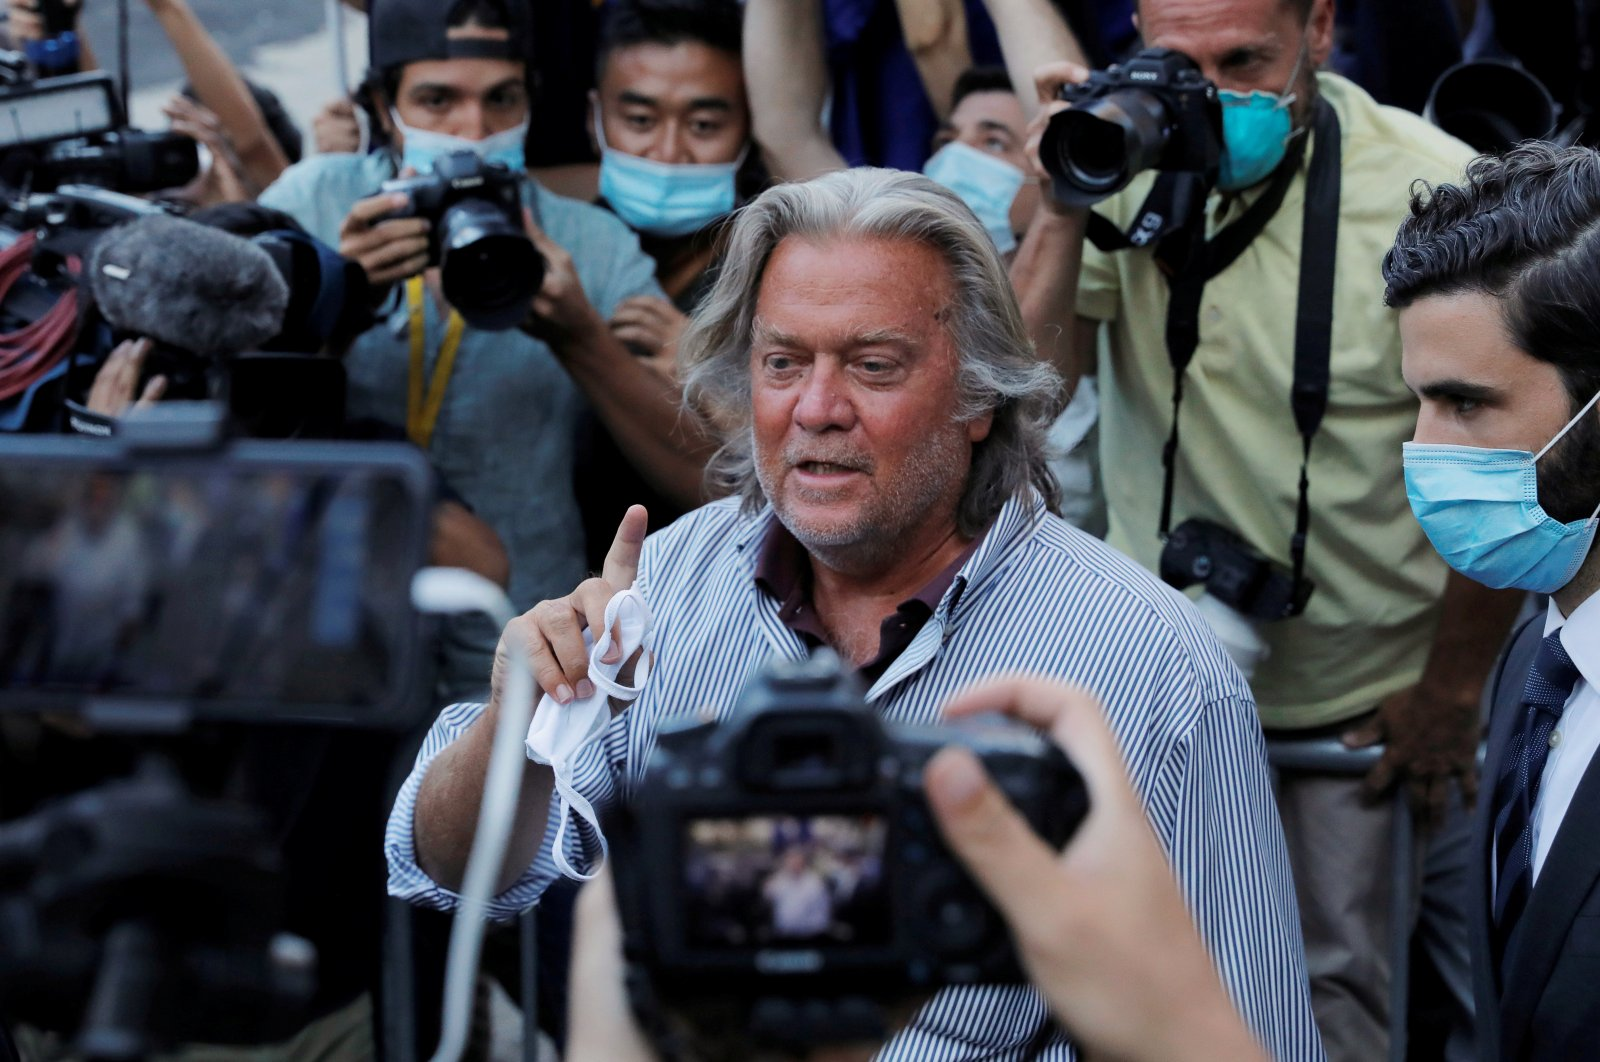 Former White House Chief Strategist Steve Bannon exits the Manhattan Federal Court, following his arraignment hearing for conspiracy to commit wire fraud and conspiracy to commit money laundering, in the Manhattan borough of New York City, New York, U.S., Aug. 20, 2020. (Reuters Photo)